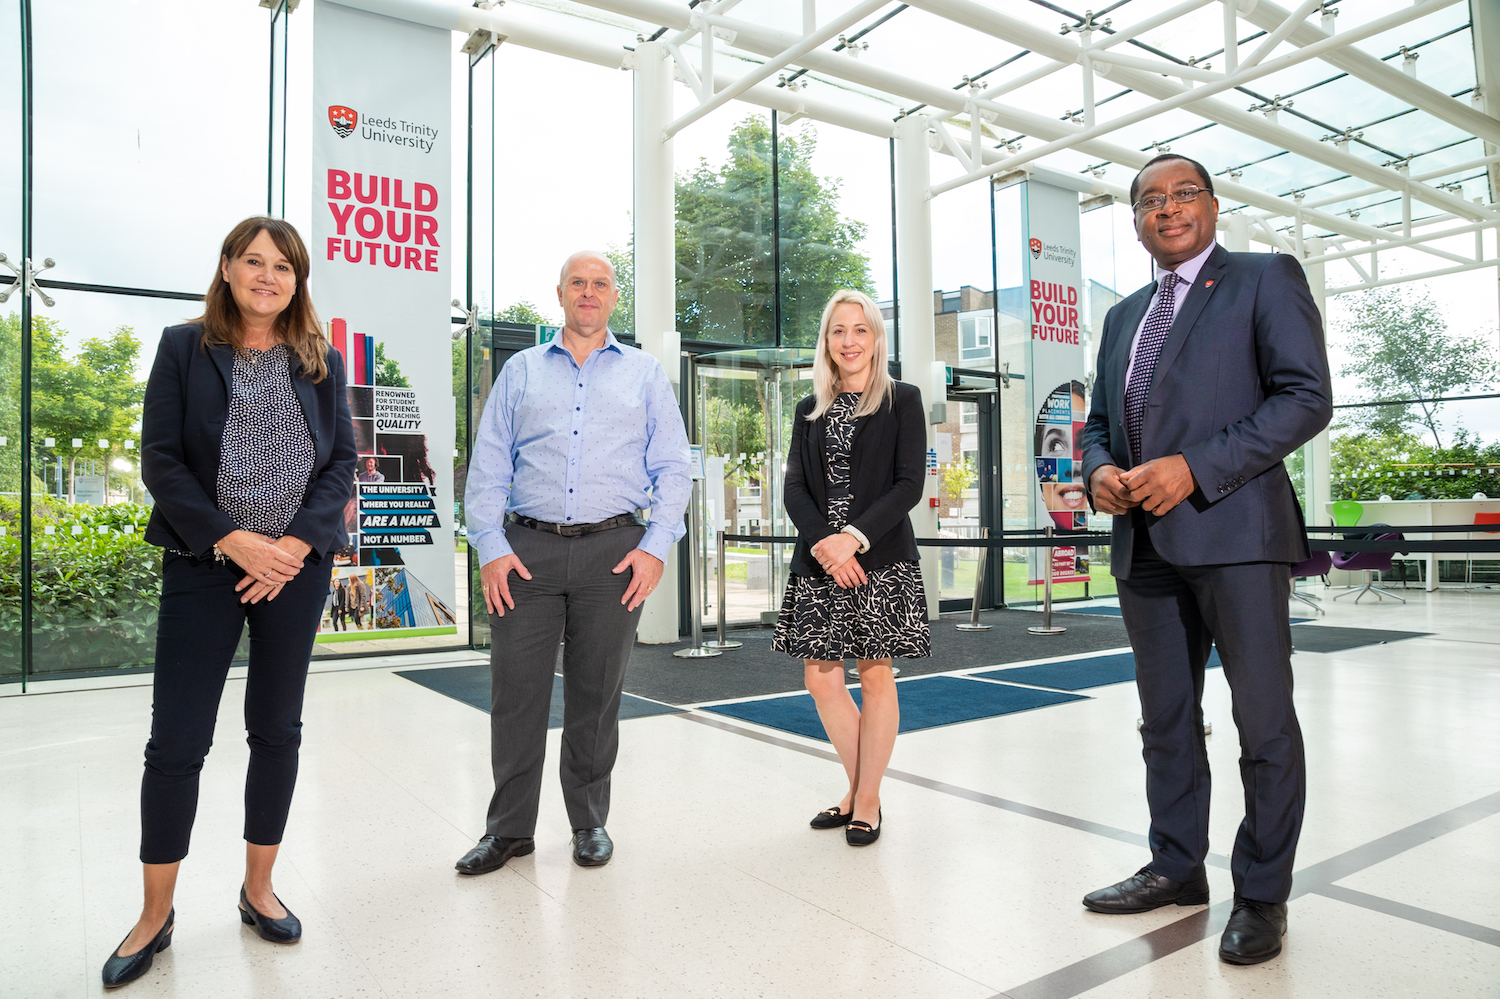 From left to right: Sue Carr (Head of Learning and Workforce Development at Leeds Trinity University), Simon Errington (HR and Resourcing at York St. John), Olivia Briddon (Equality, Diversity & Inclusion Manager at the University of Huddersfield), Professor Charles Egbu (Vice-Chancellor at Leeds Trinity University).